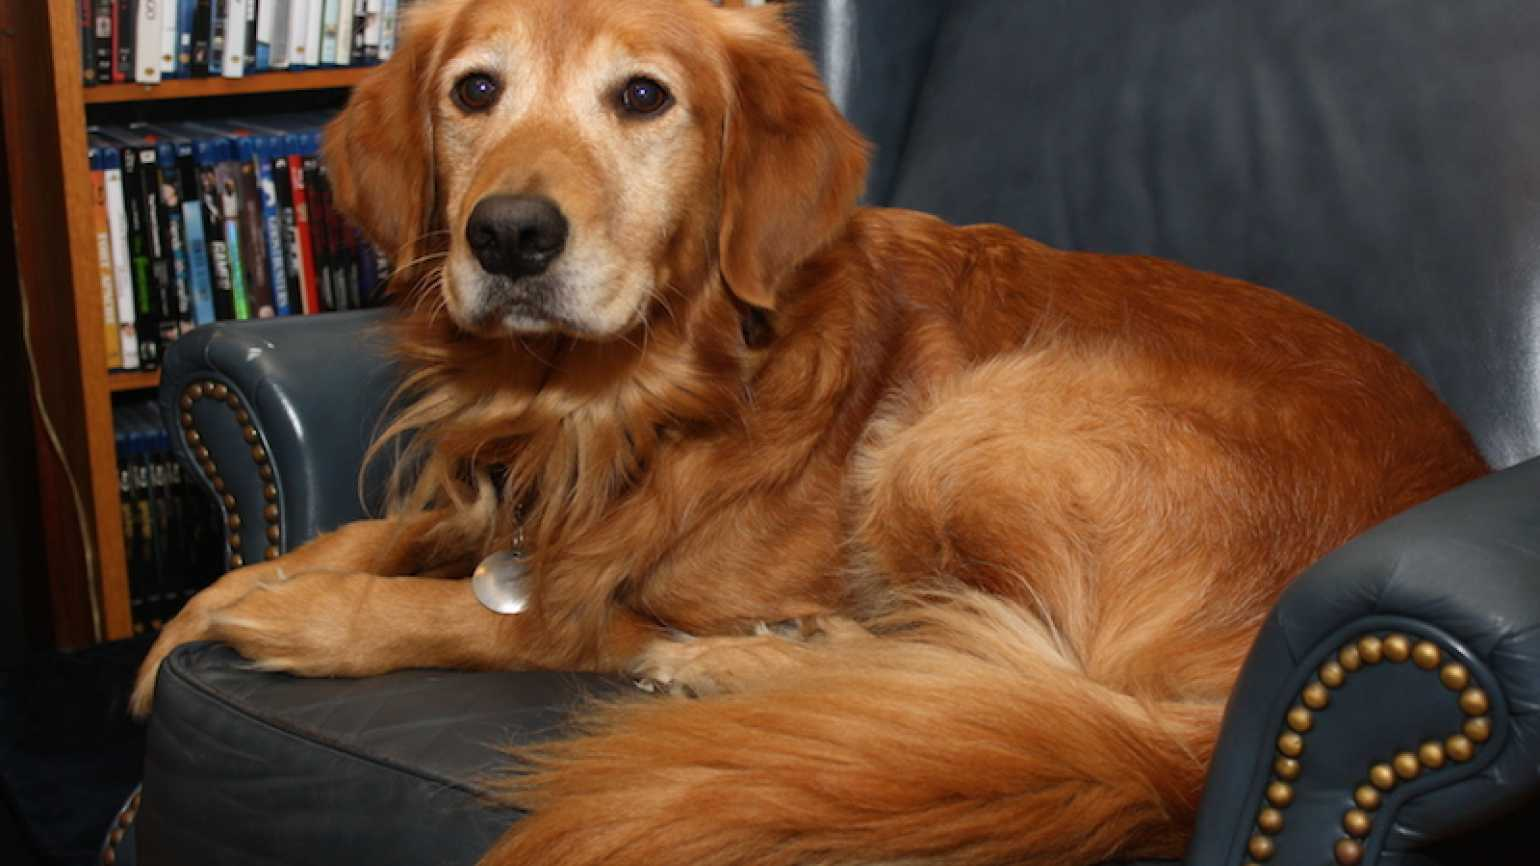 Ike the Golden Retriever at home